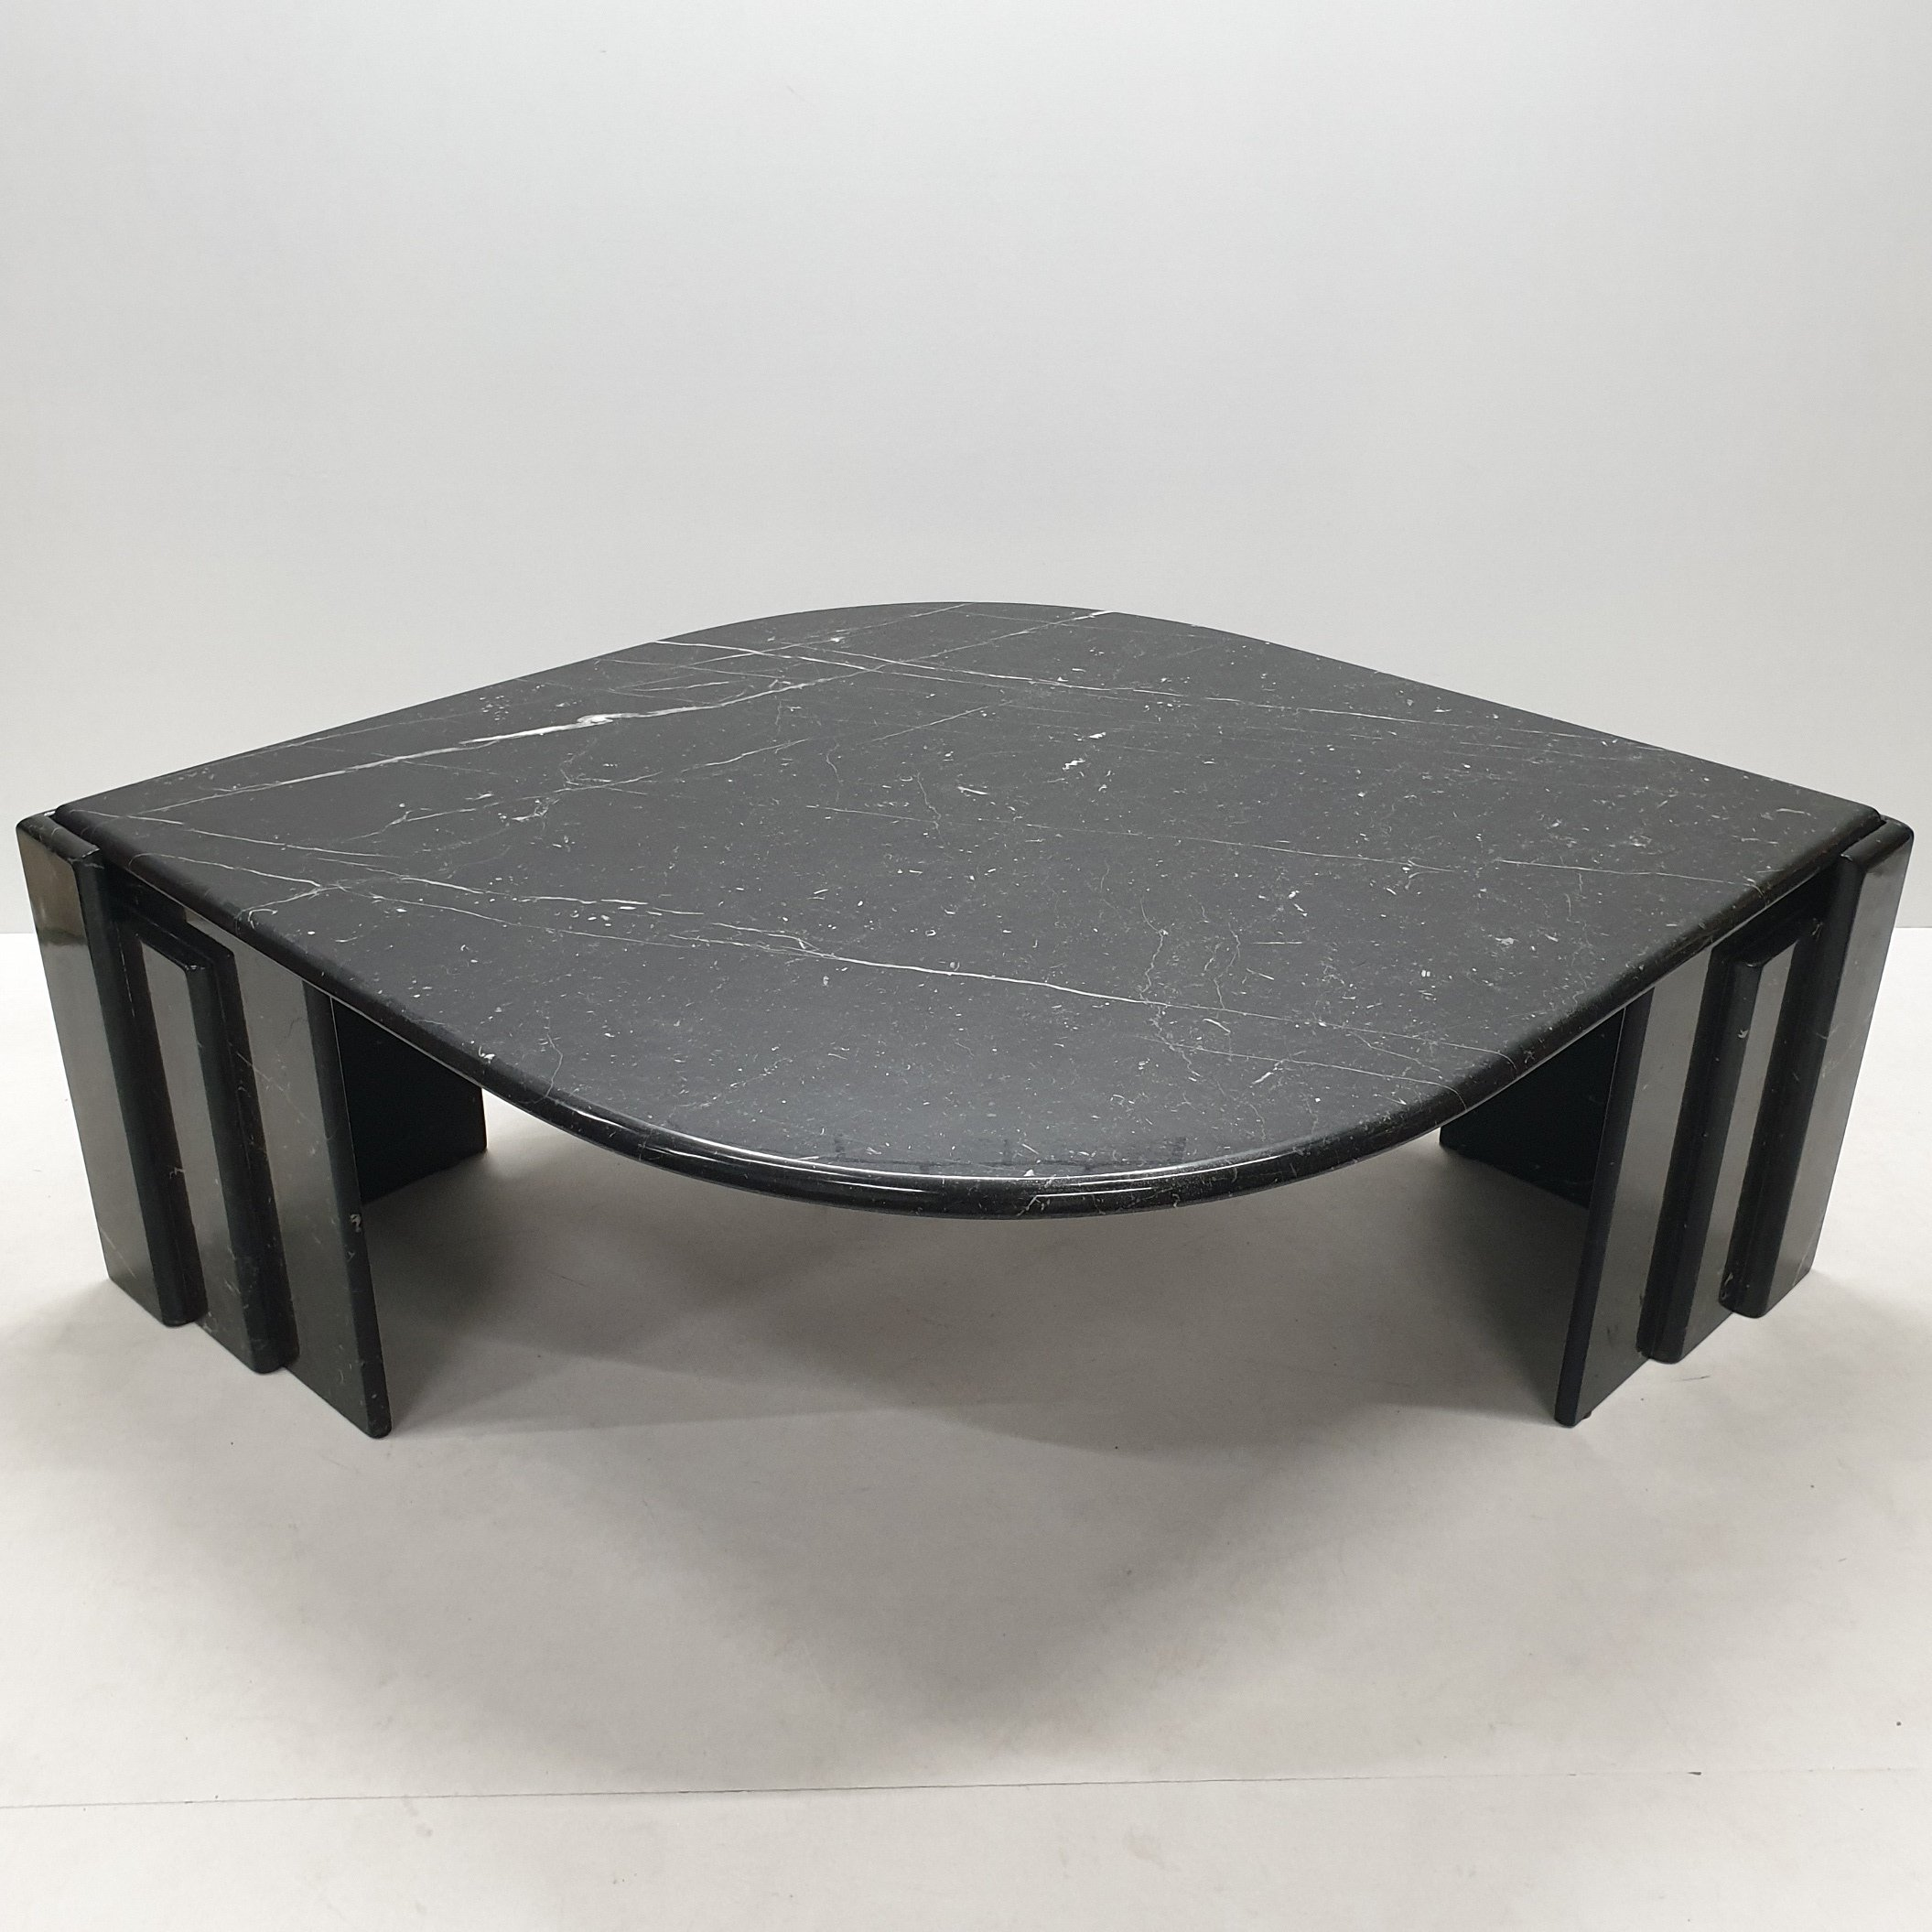 Vintage Italian Black White Marble Coffee Table 1970s 117630